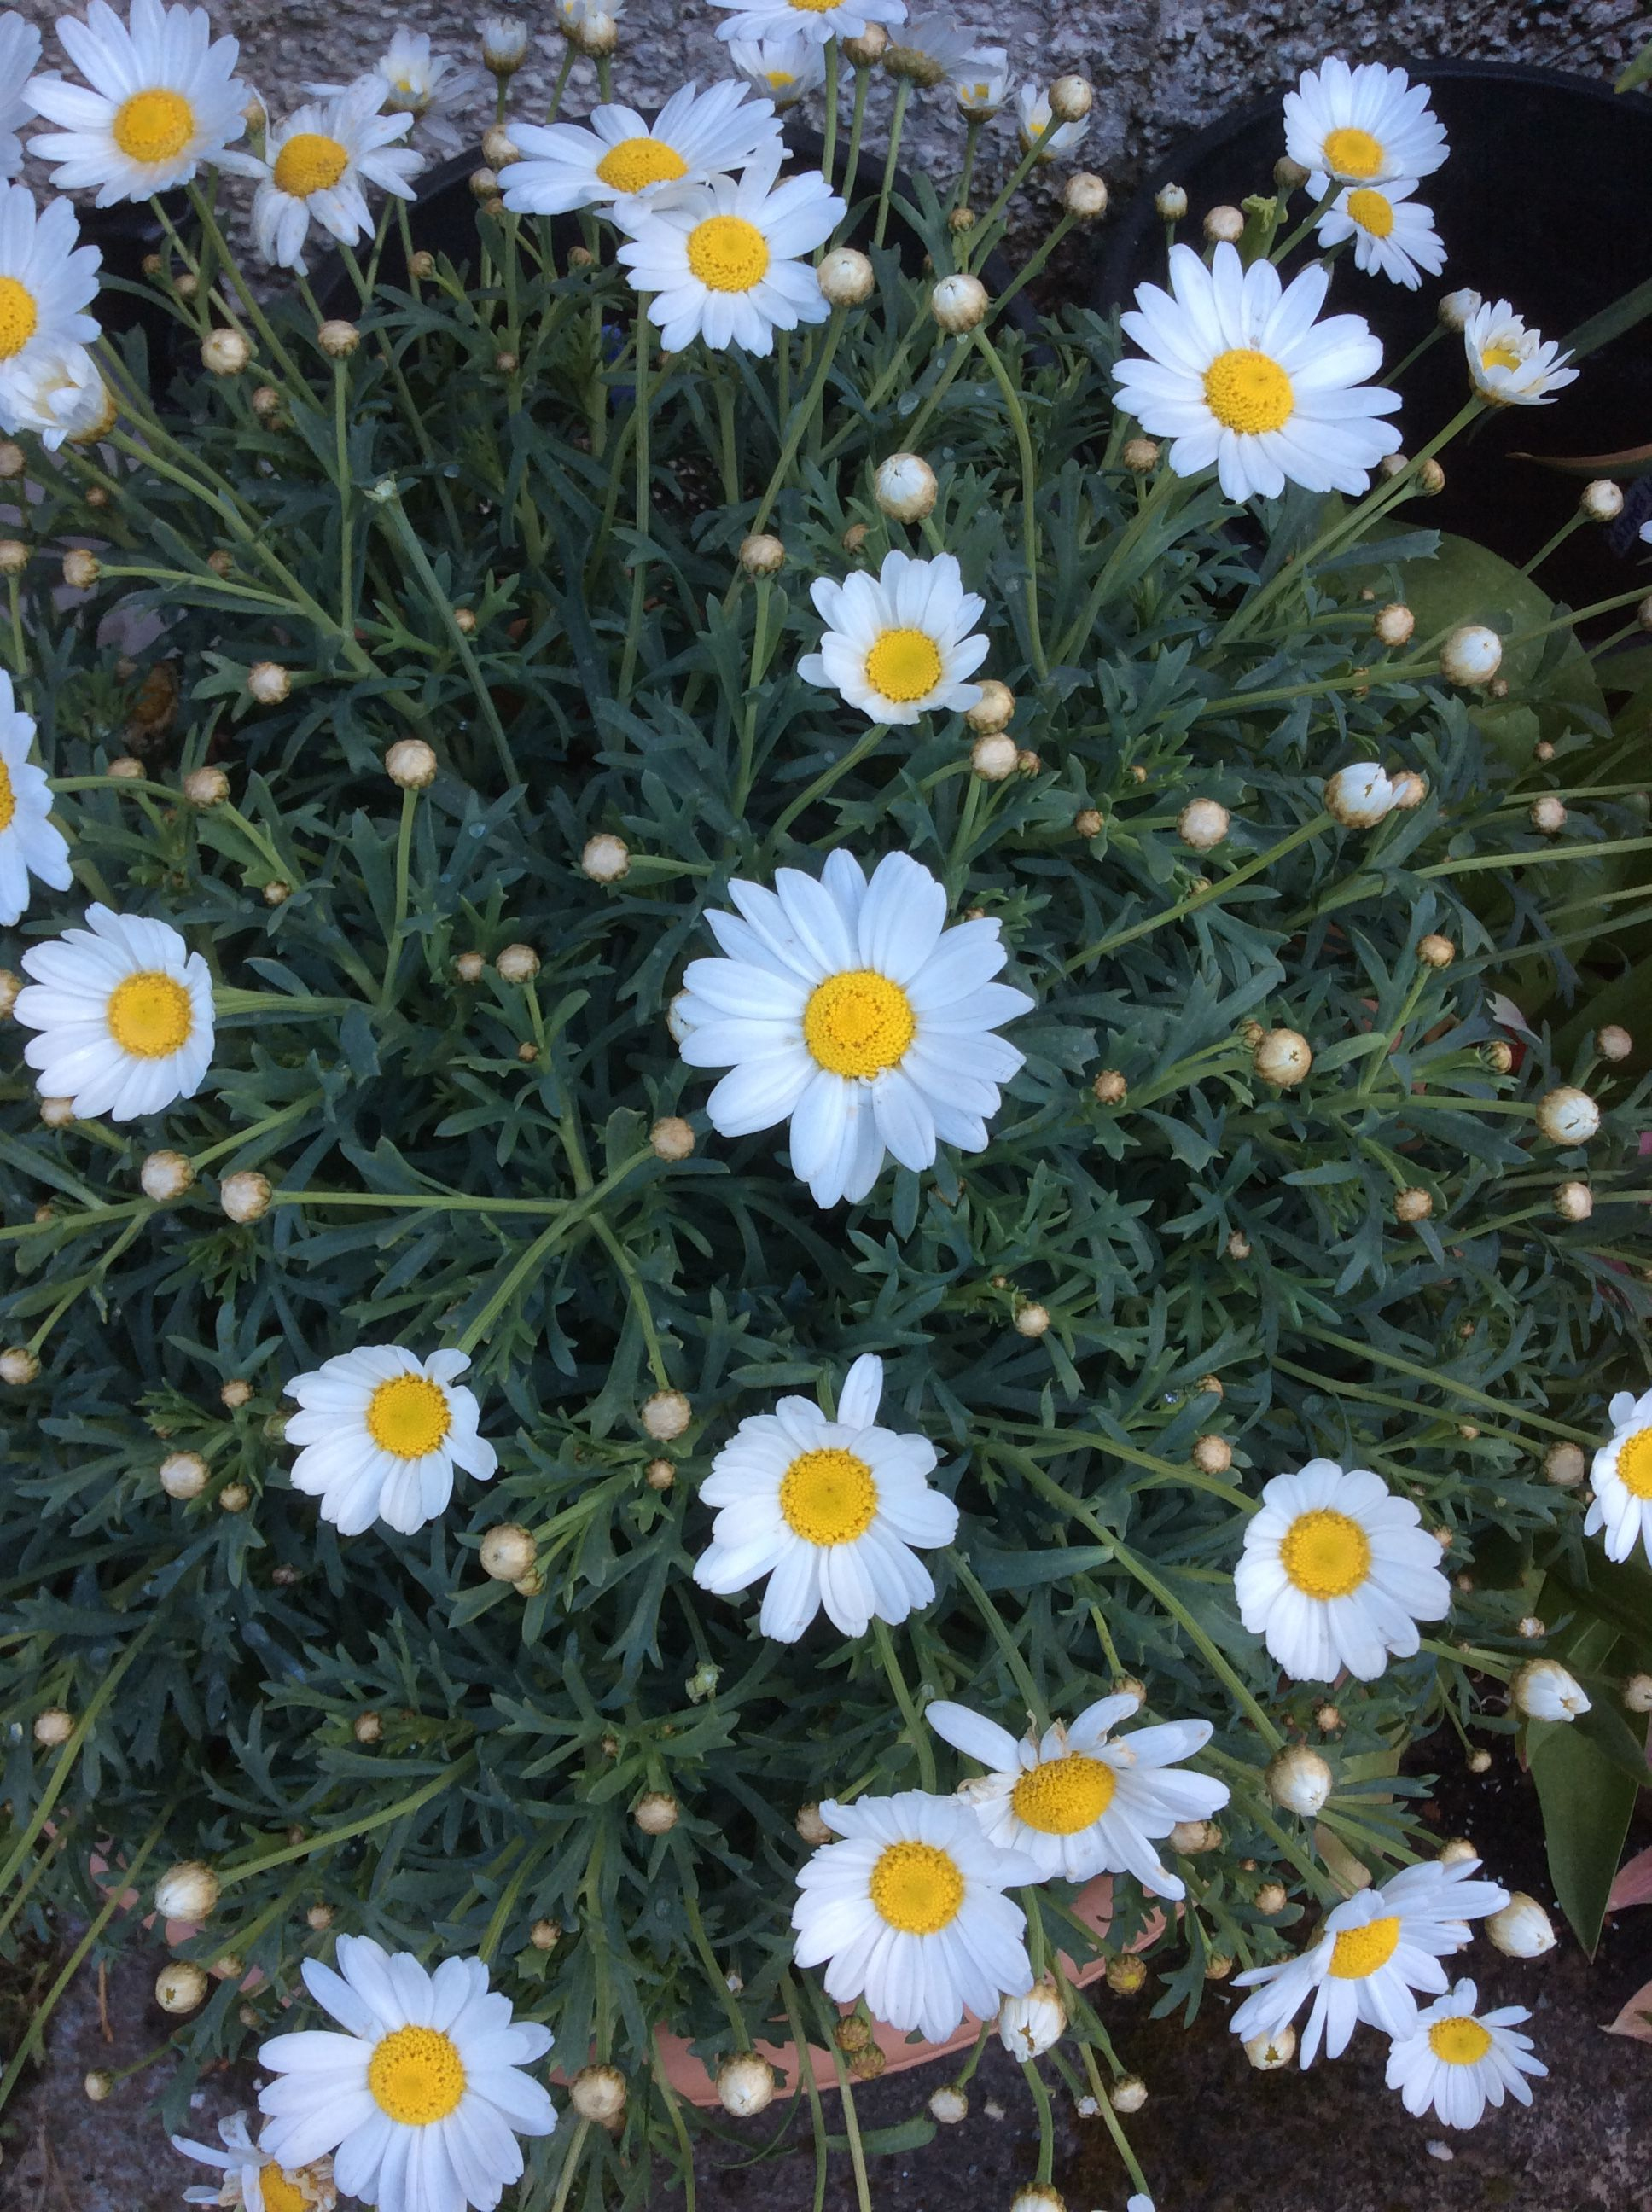 A Gorgeous Marguerite Or Felicia Pretty White Daisy Like Flowers